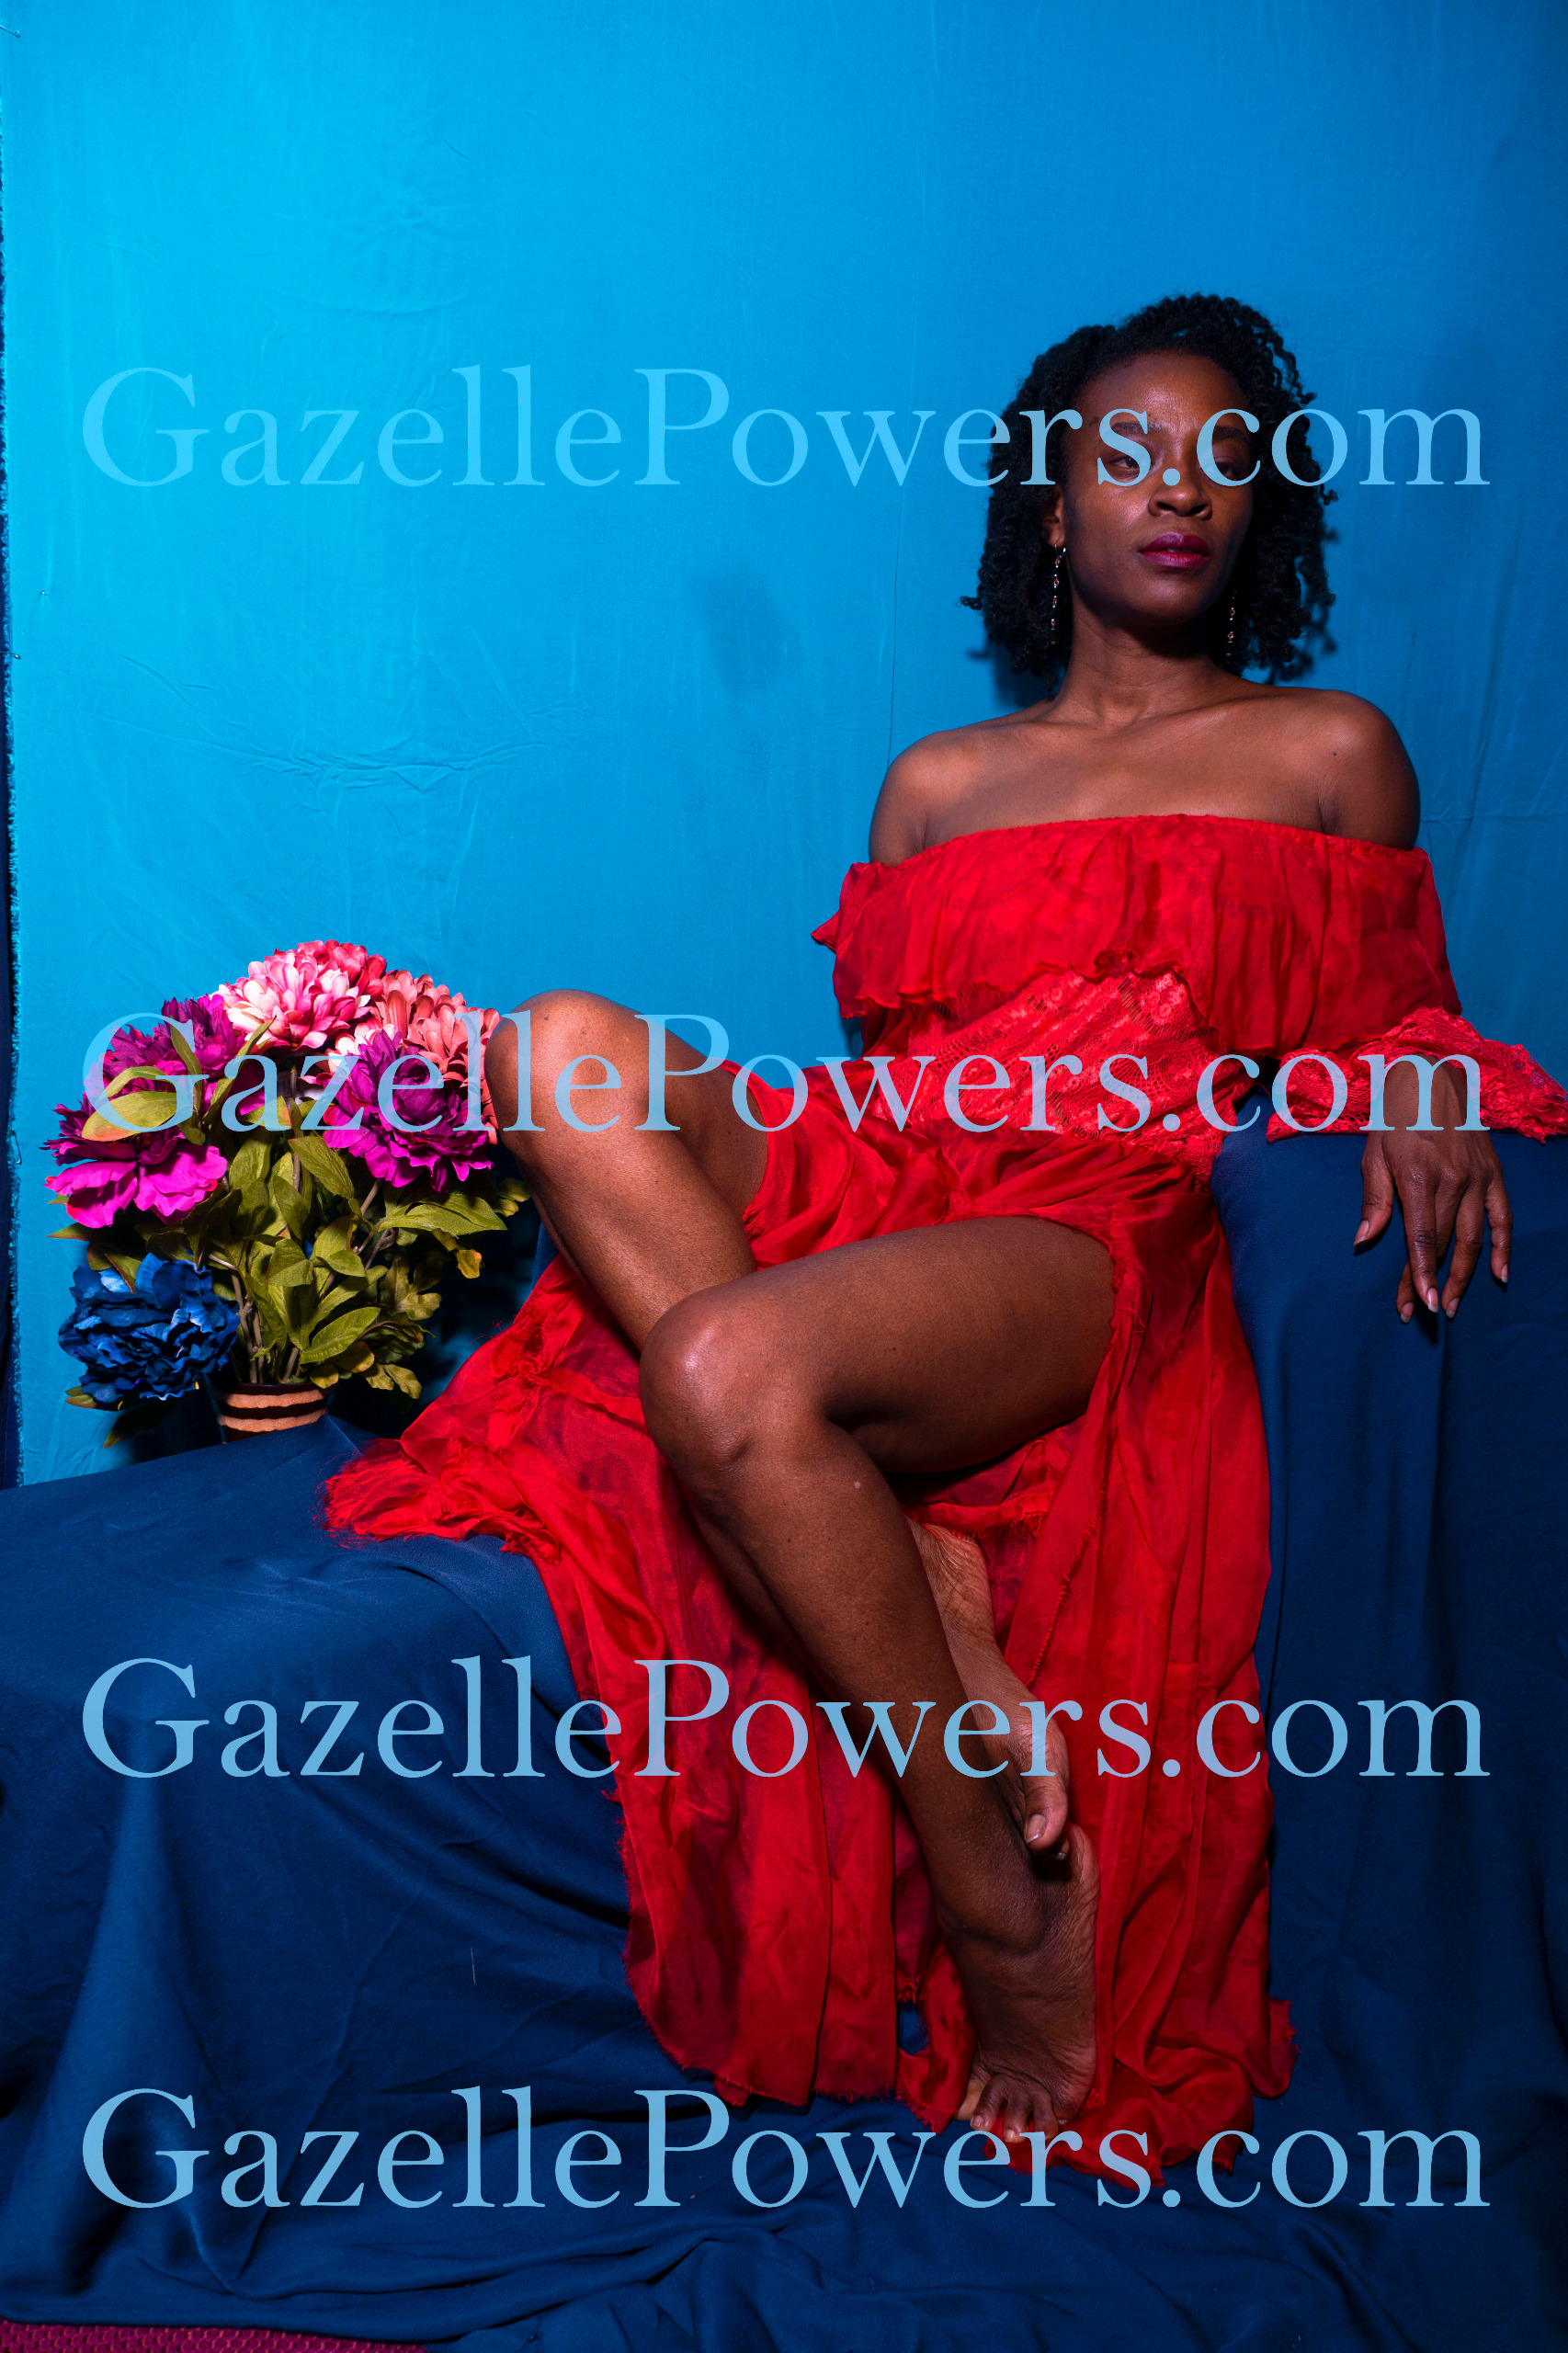 July 12th Session - Lady in Red #5